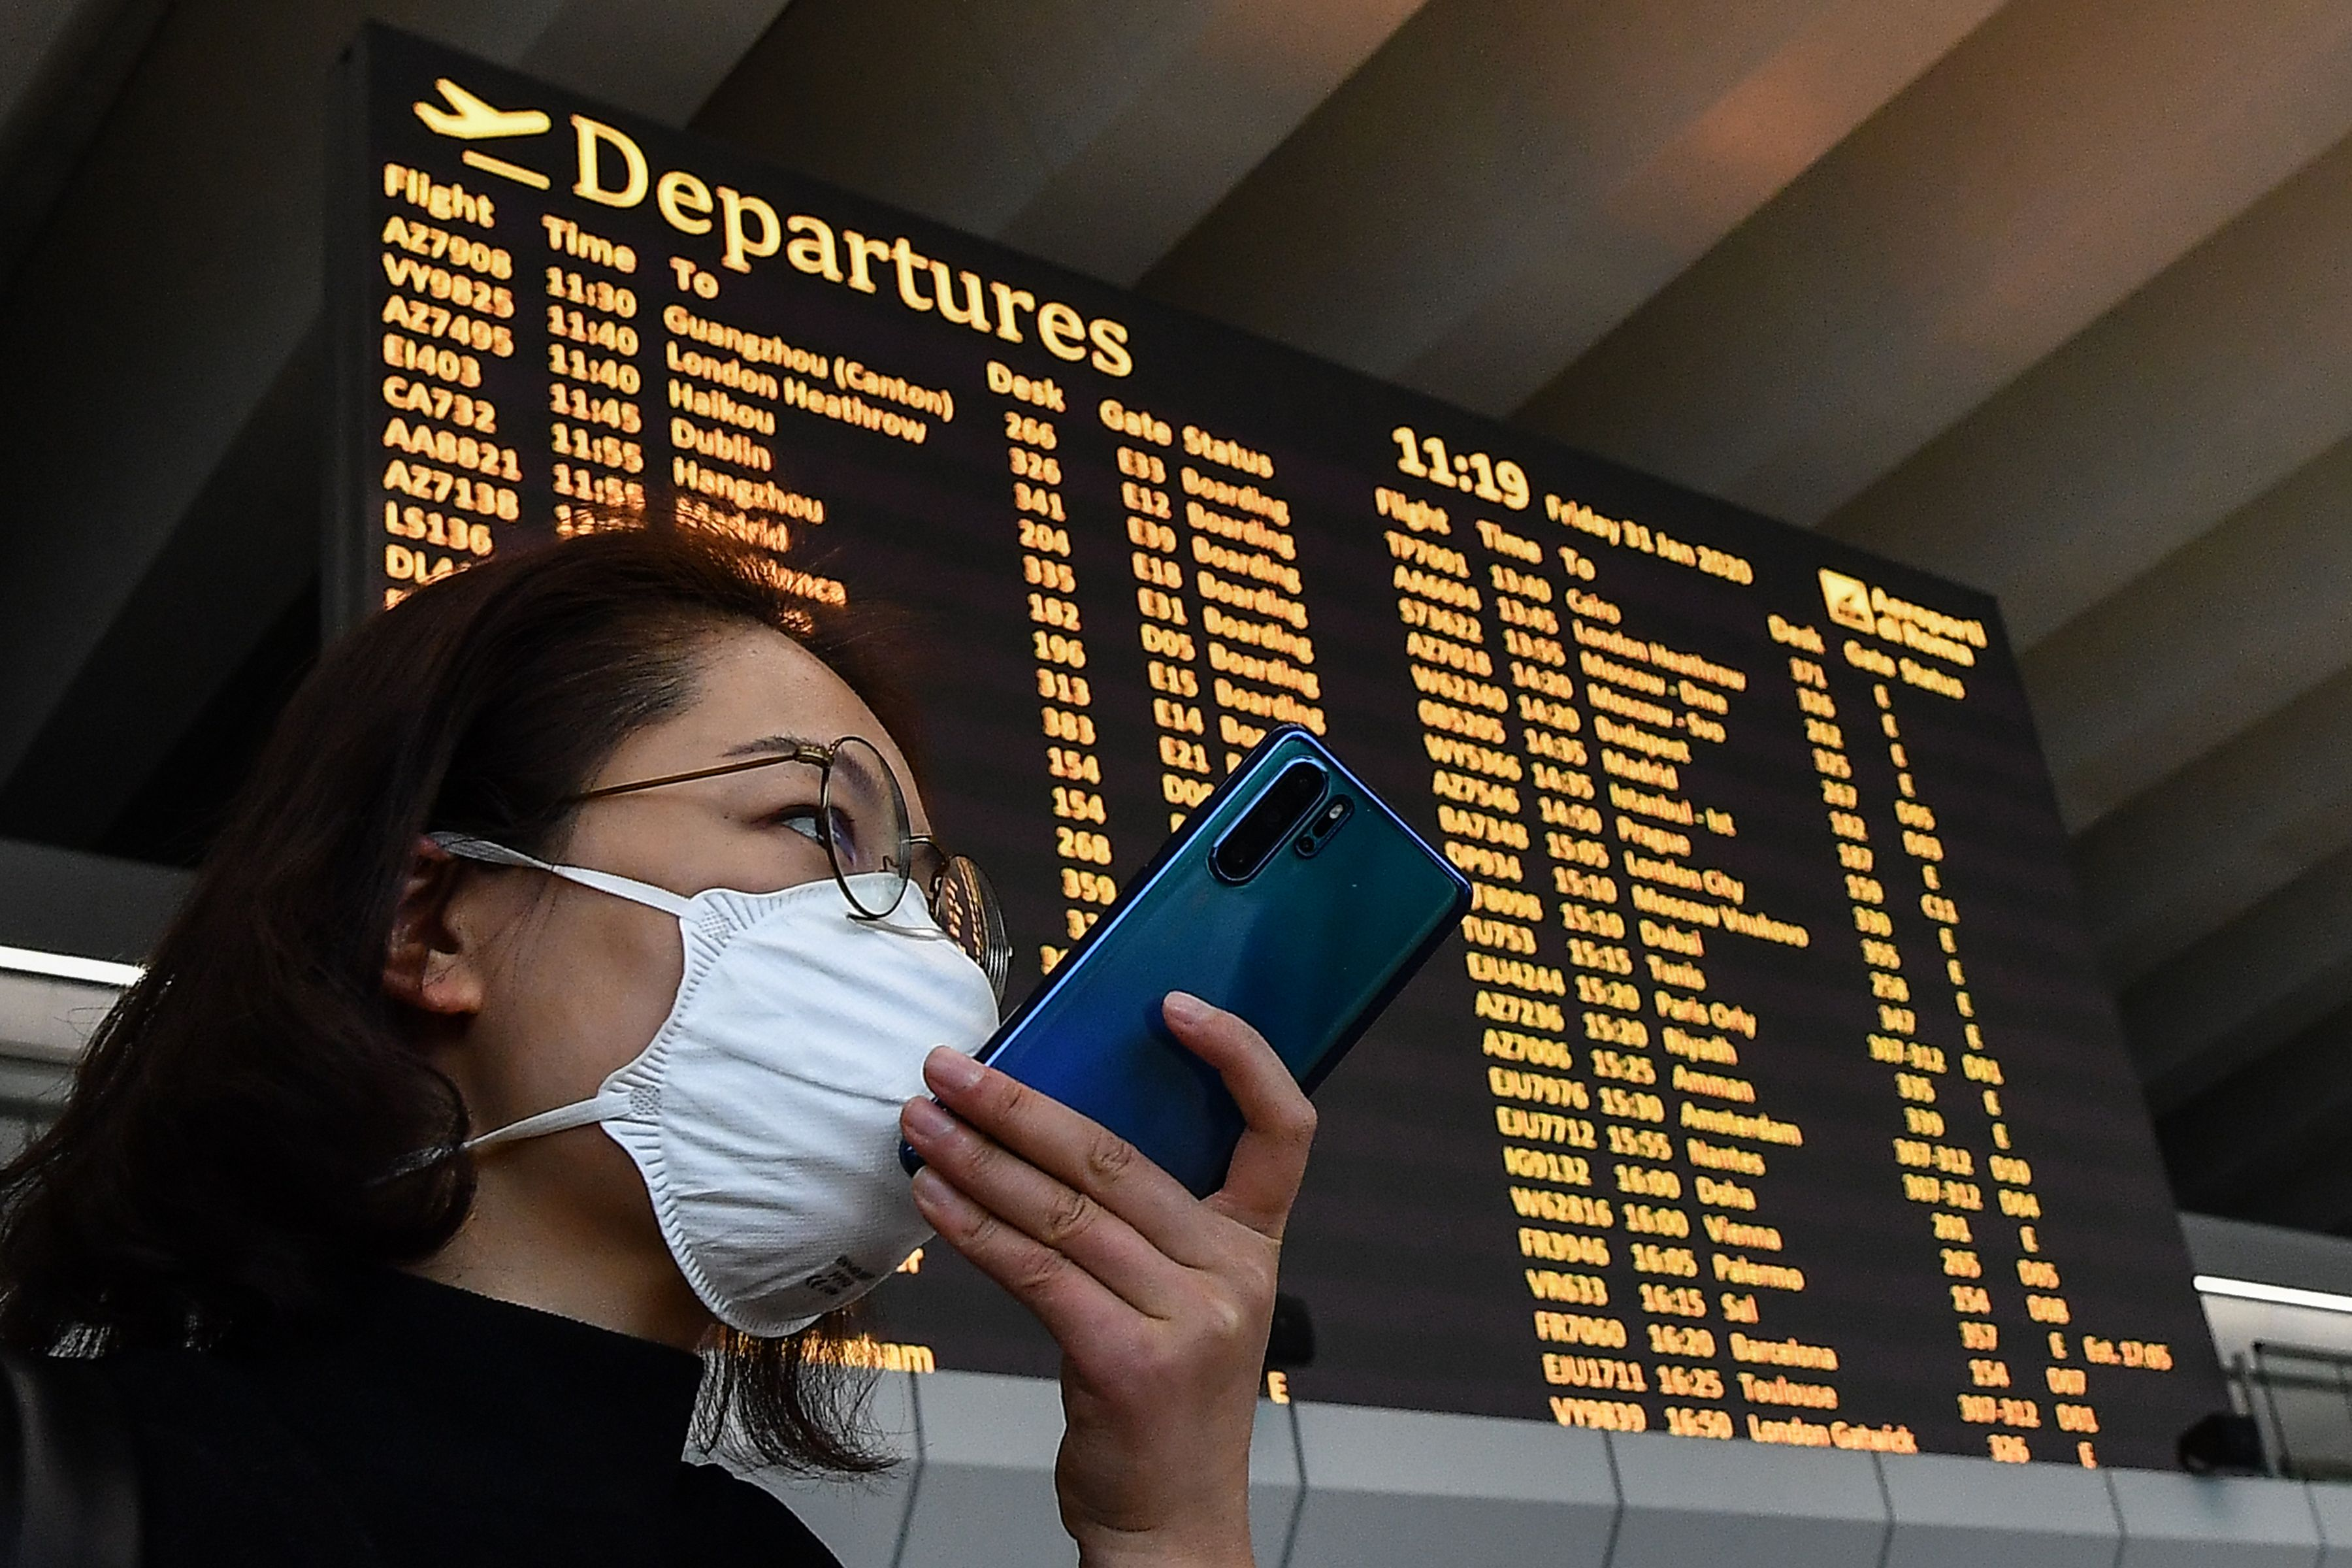 A passenger wearing a respiratory mask speaks on her smartphone by the departures board on January 31, 2020 at Rome's Fiumicino airport, as a number of airlines halted or reduced flights to China as the country struggles to contain the spread of the deadly novel coronavirus. - The Italian government said on January 30, 2020 it was suspending all flights between Italy and China, adding it was the first EU government to do so. China has advised its citizens to postpone trips abroad and cancelled overseas group tours, while several countries have urged their citizens to avoid travel to China. (Photo by Tiziana FABI / AFP) (Photo by TIZIANA FABI/AFP via Getty Images)